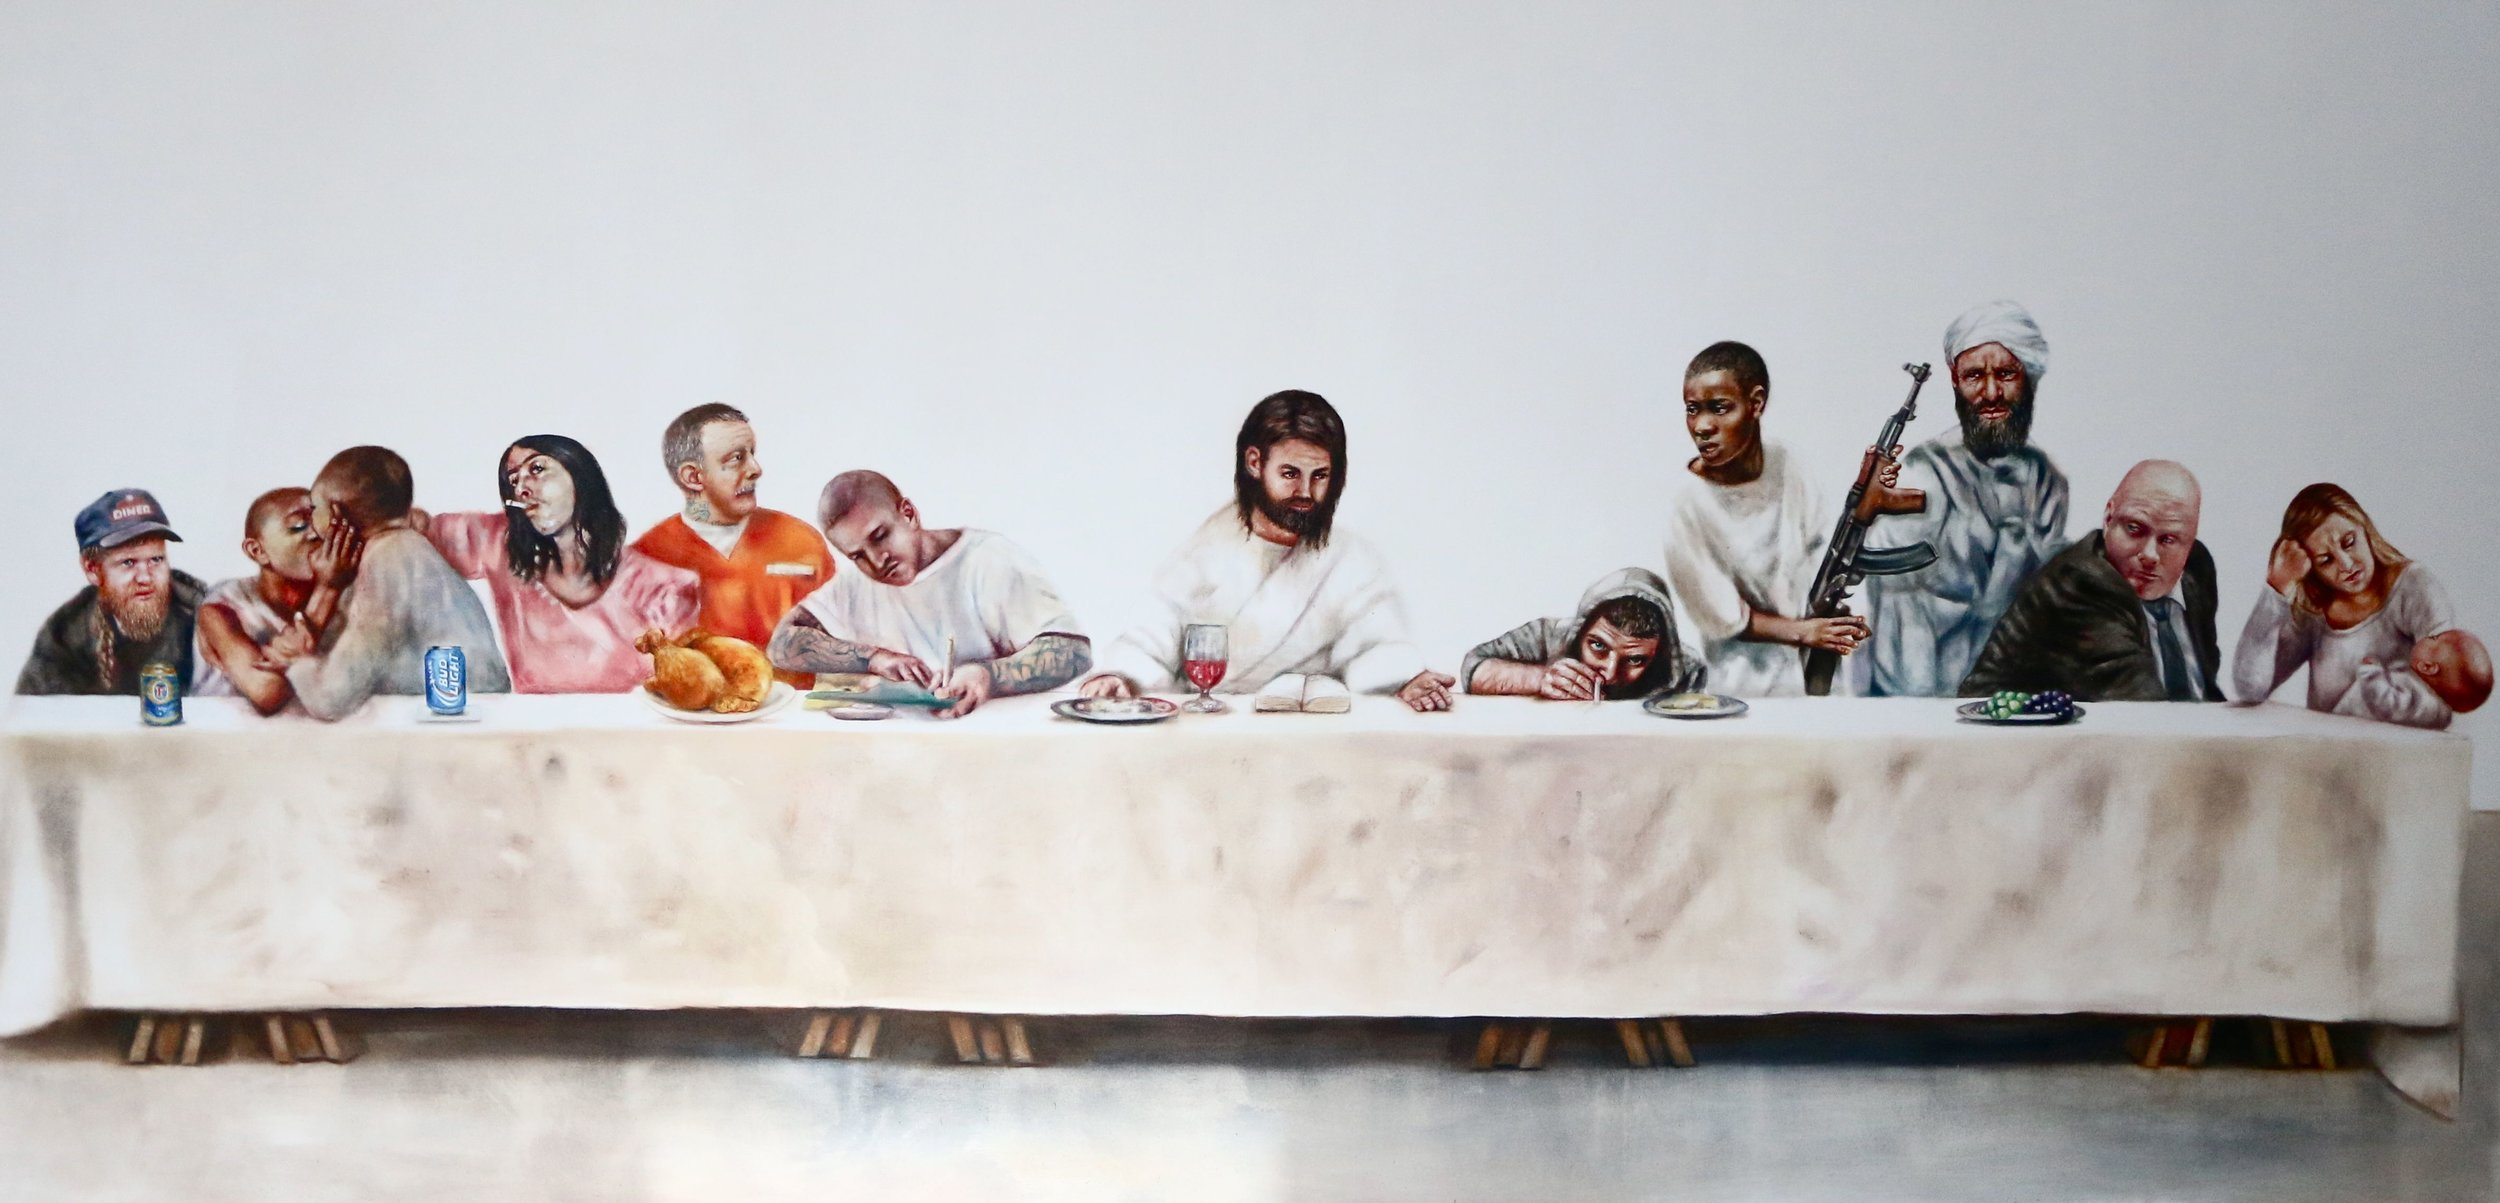 Johan Andersson 'Last Supper'.